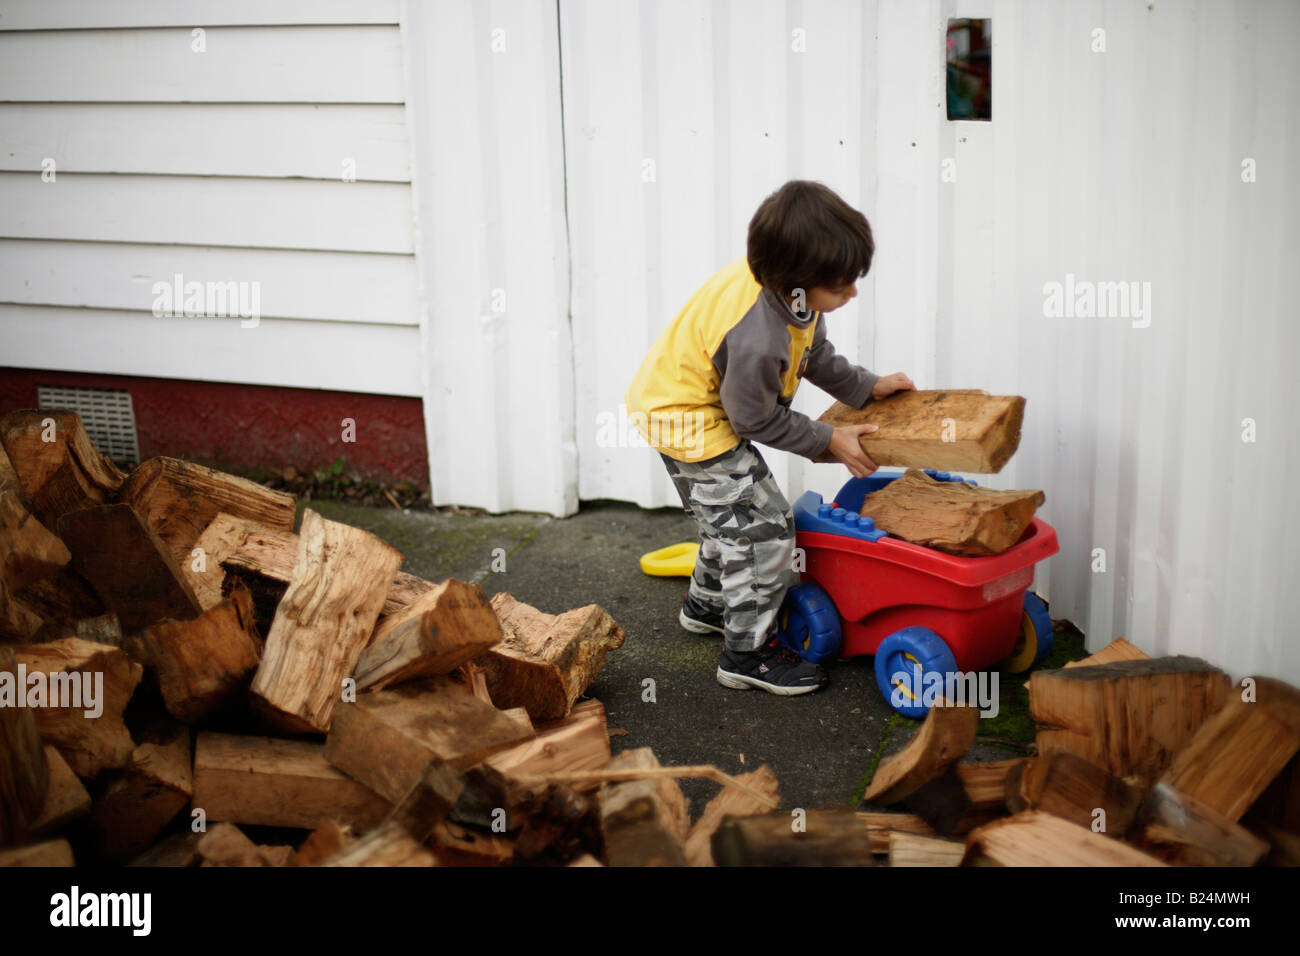 Boy aged six collects firewood in plastic toy trolley Wood is a zero carbon sustainable and renewable heating fuel - Stock Image